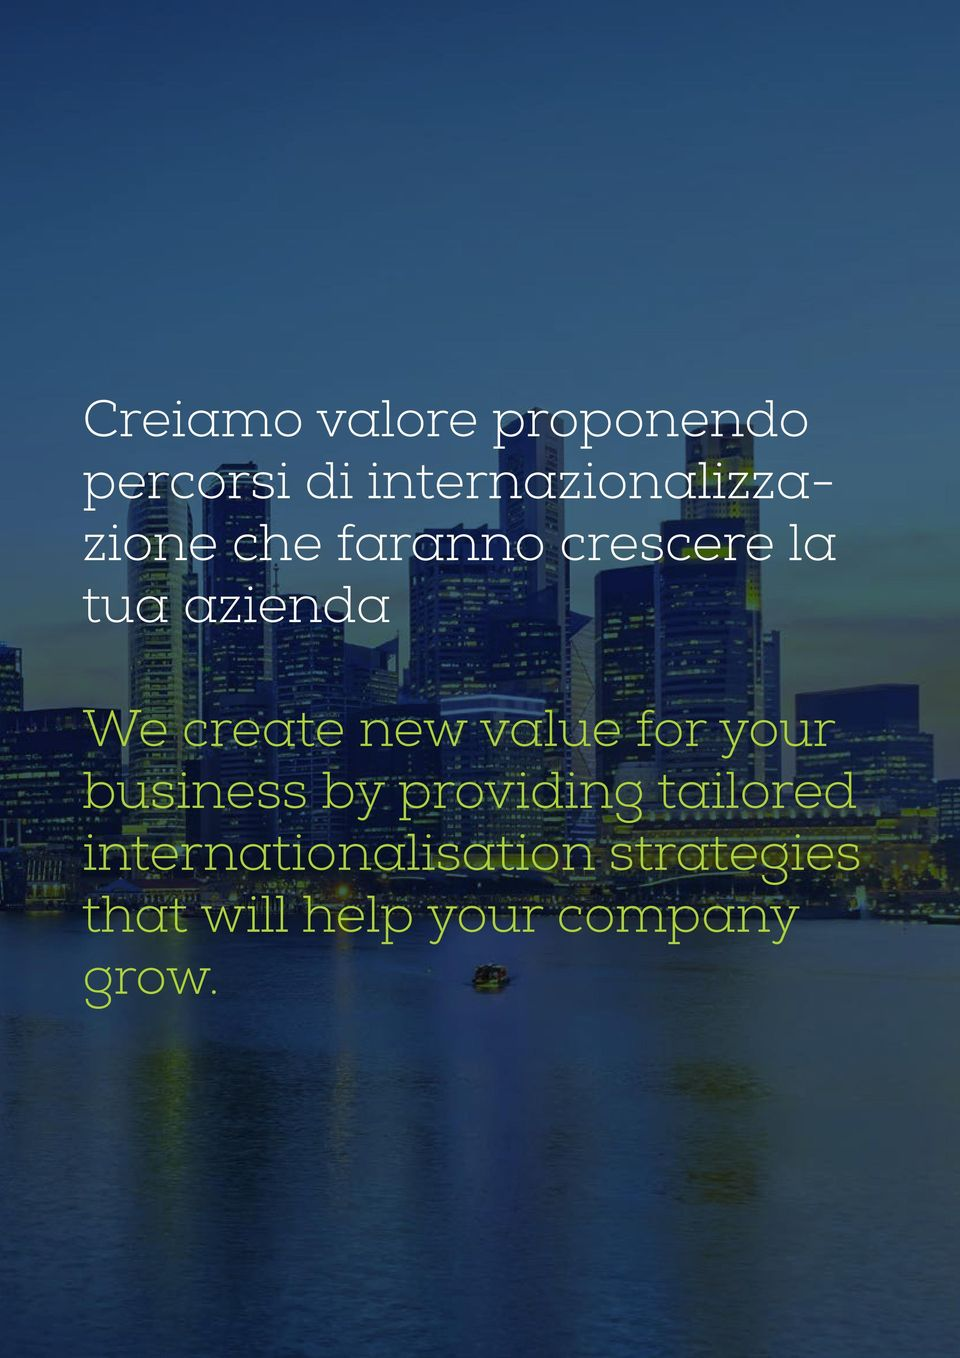 azienda We create new value for your business by